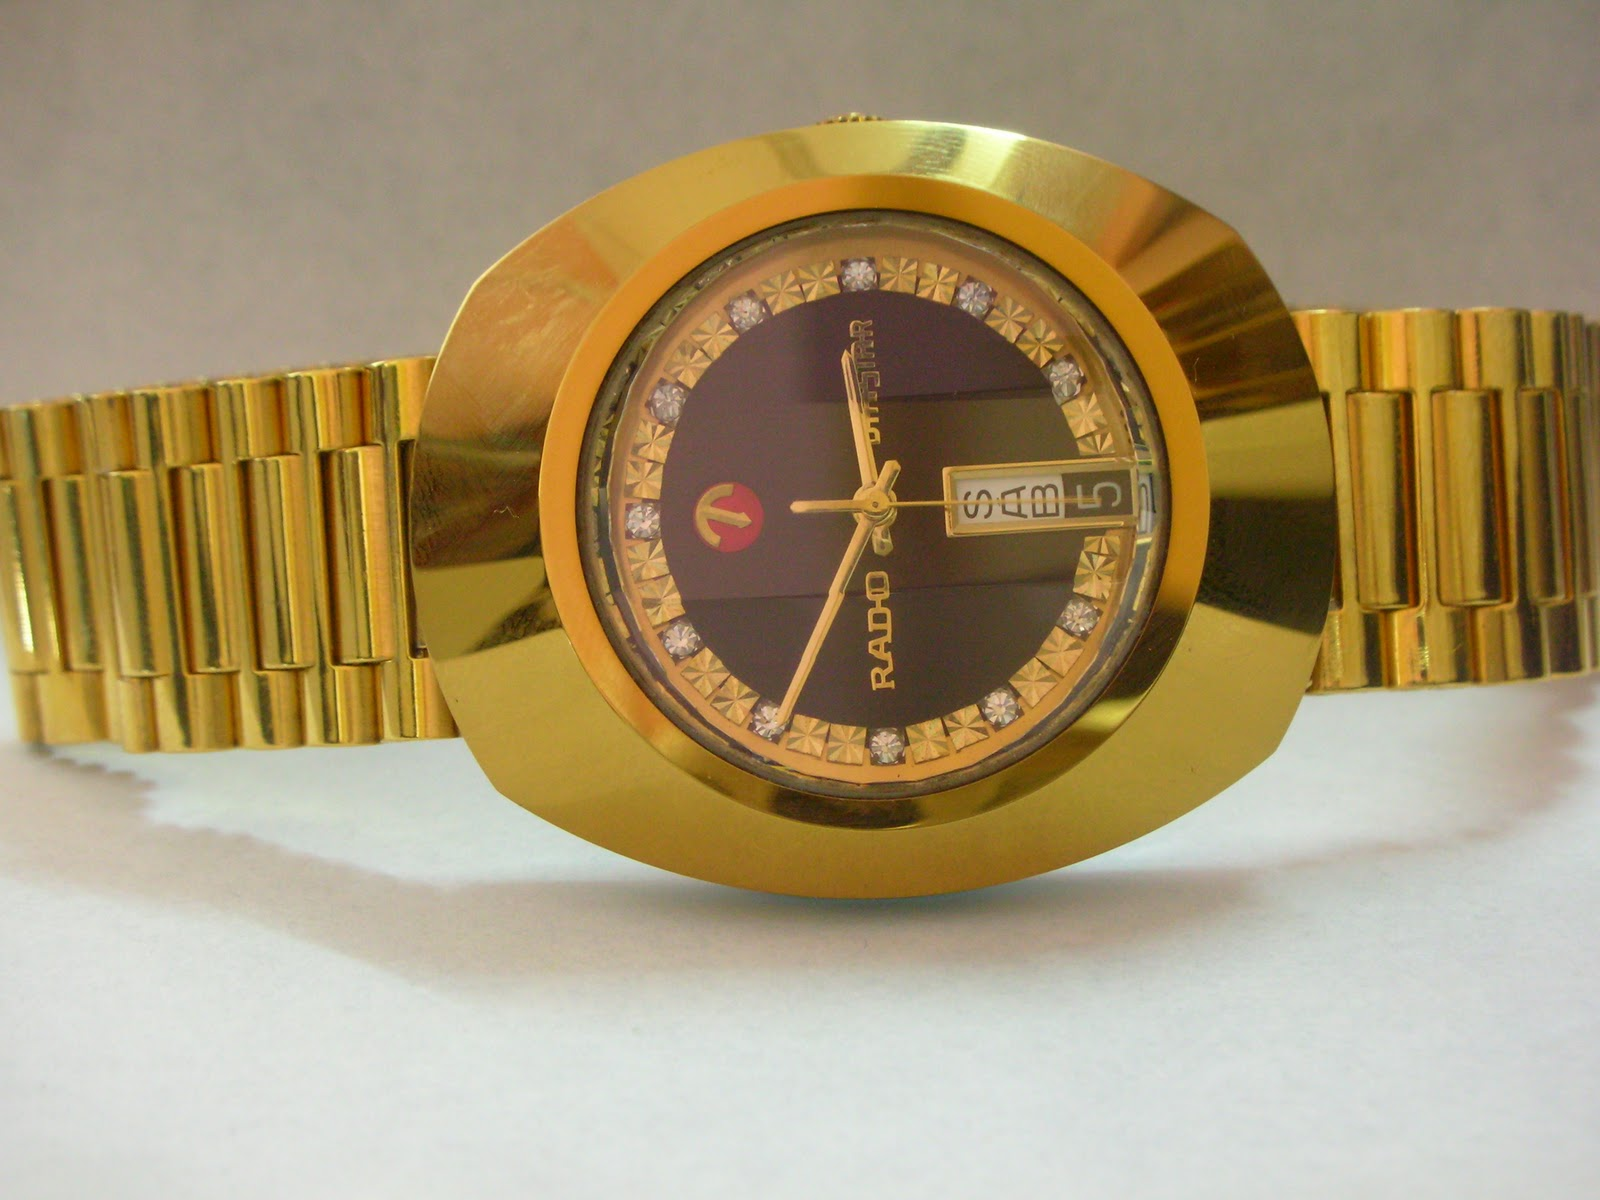 Rado Golden Belt Watches